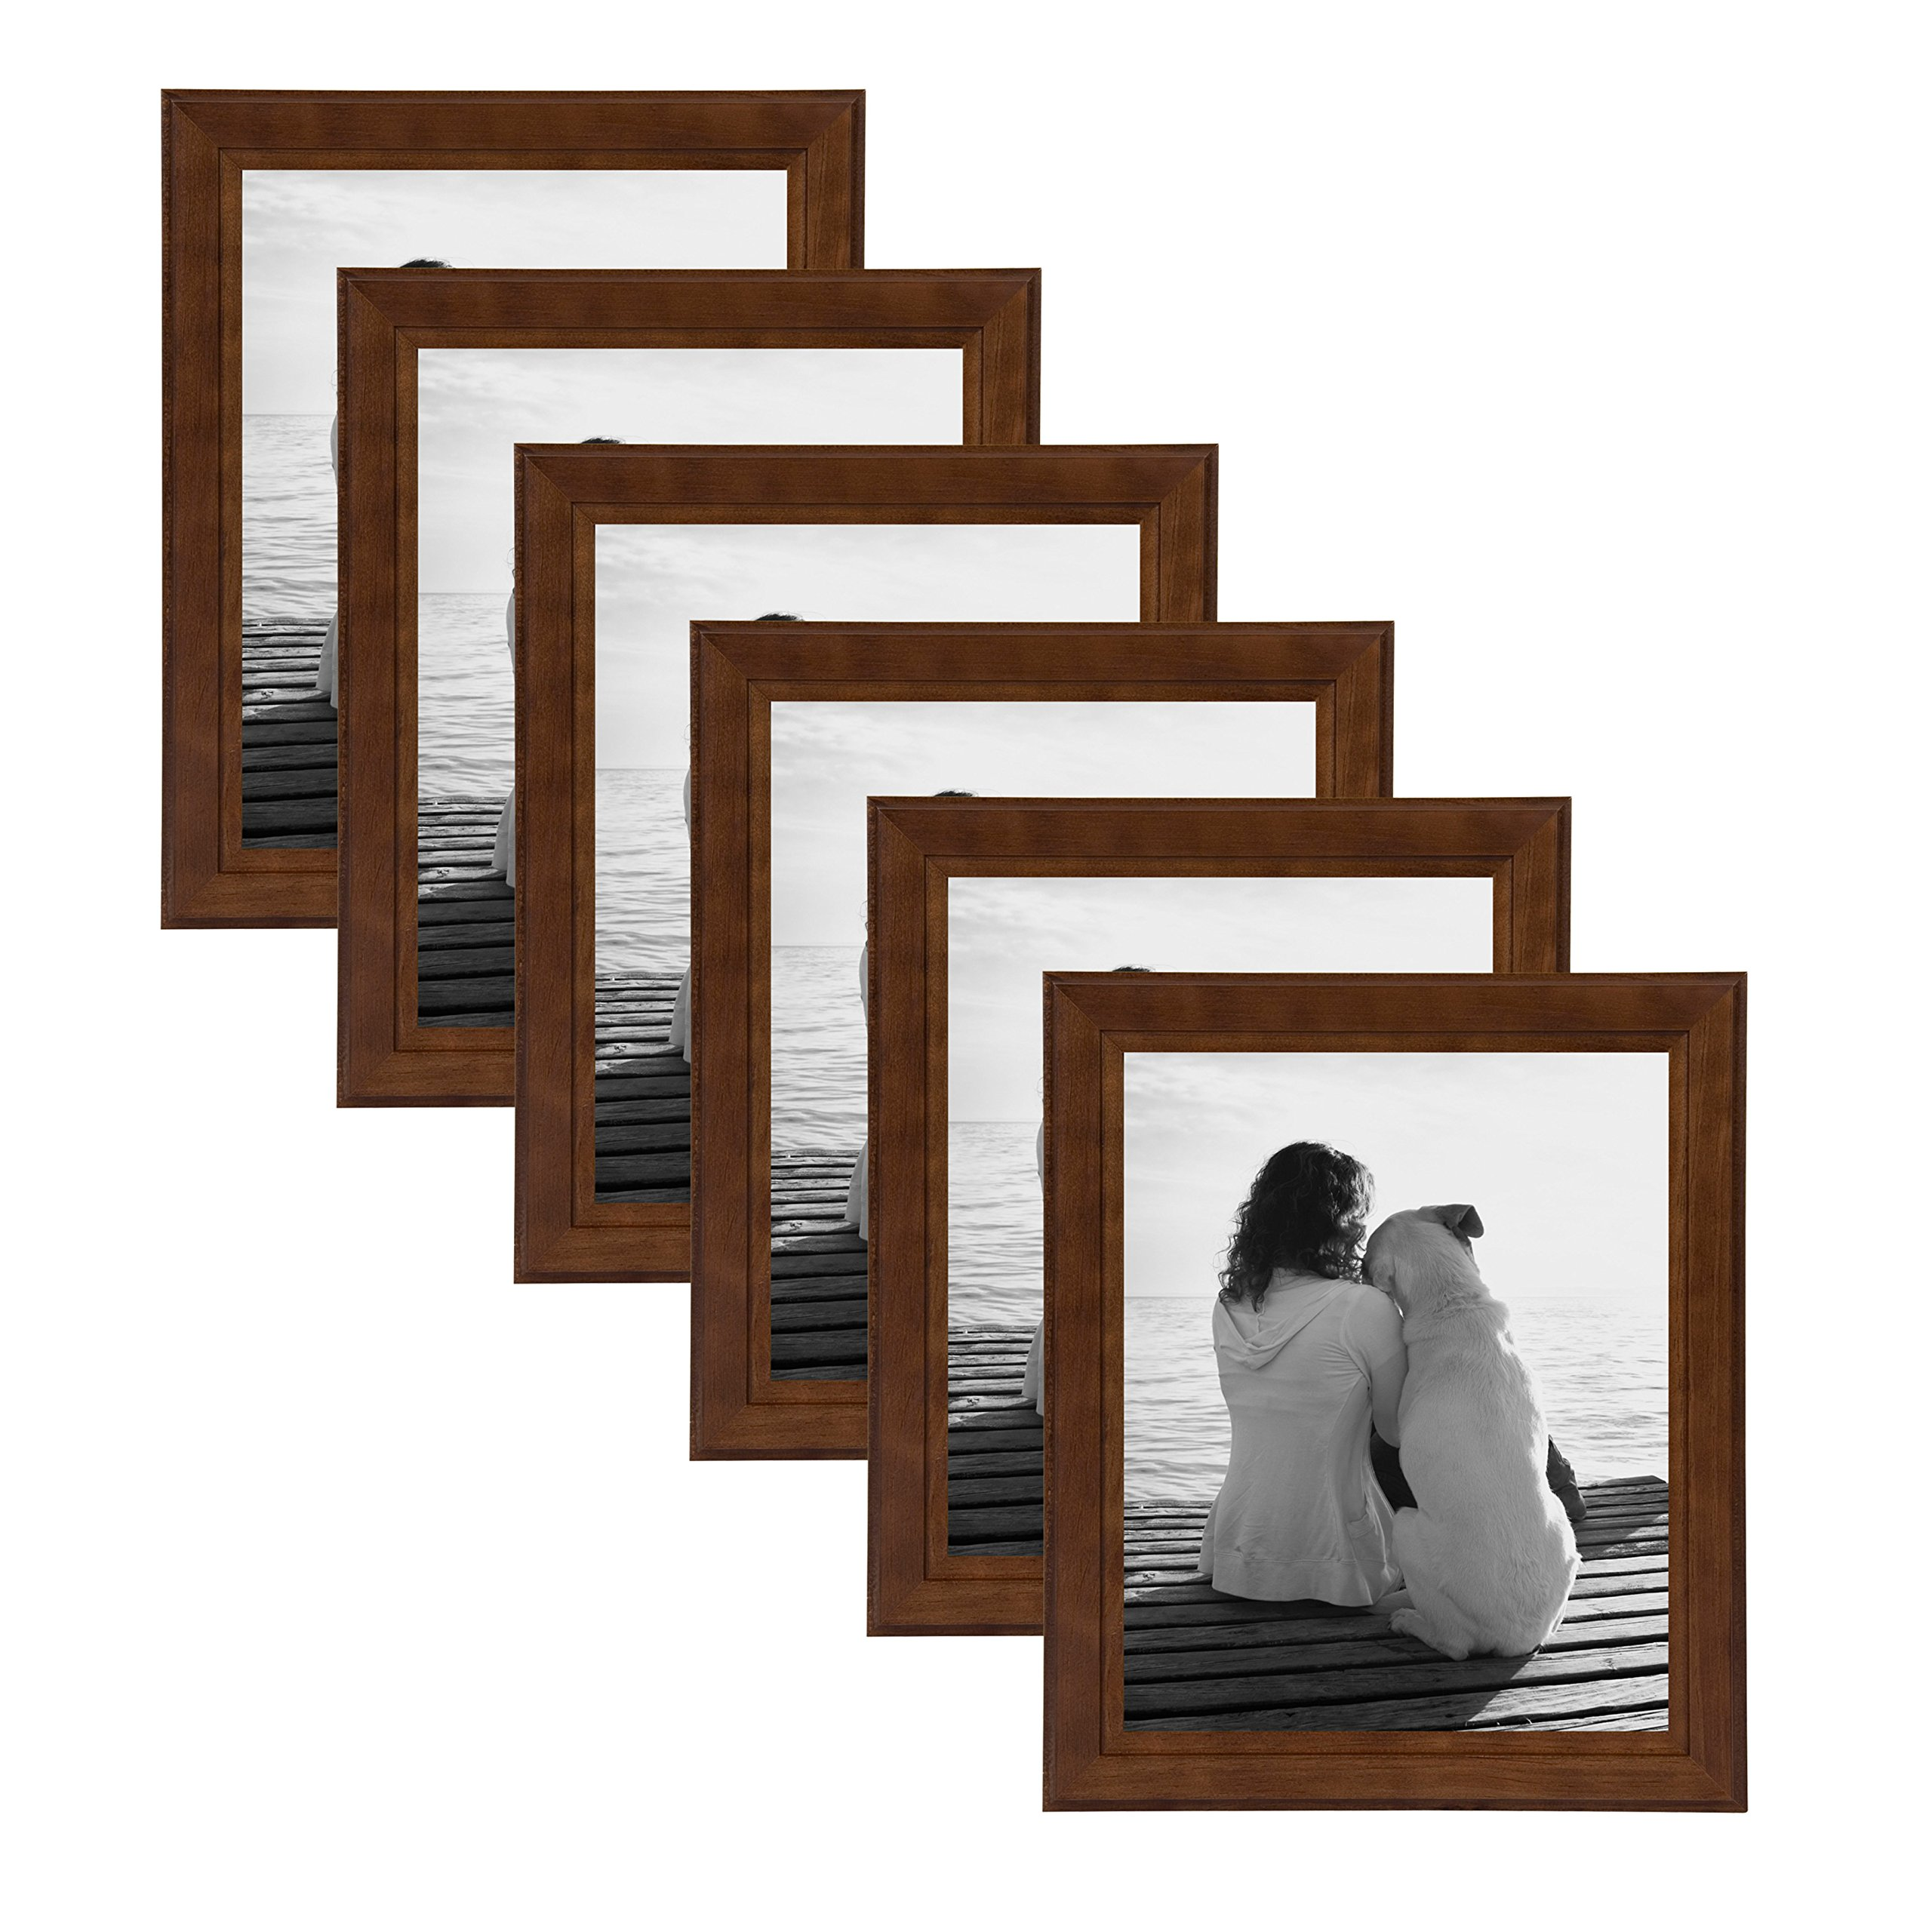 DesignOvation Kieva Solid Wood Picture Frames, Espresso Brown 8x10, Pack of 6